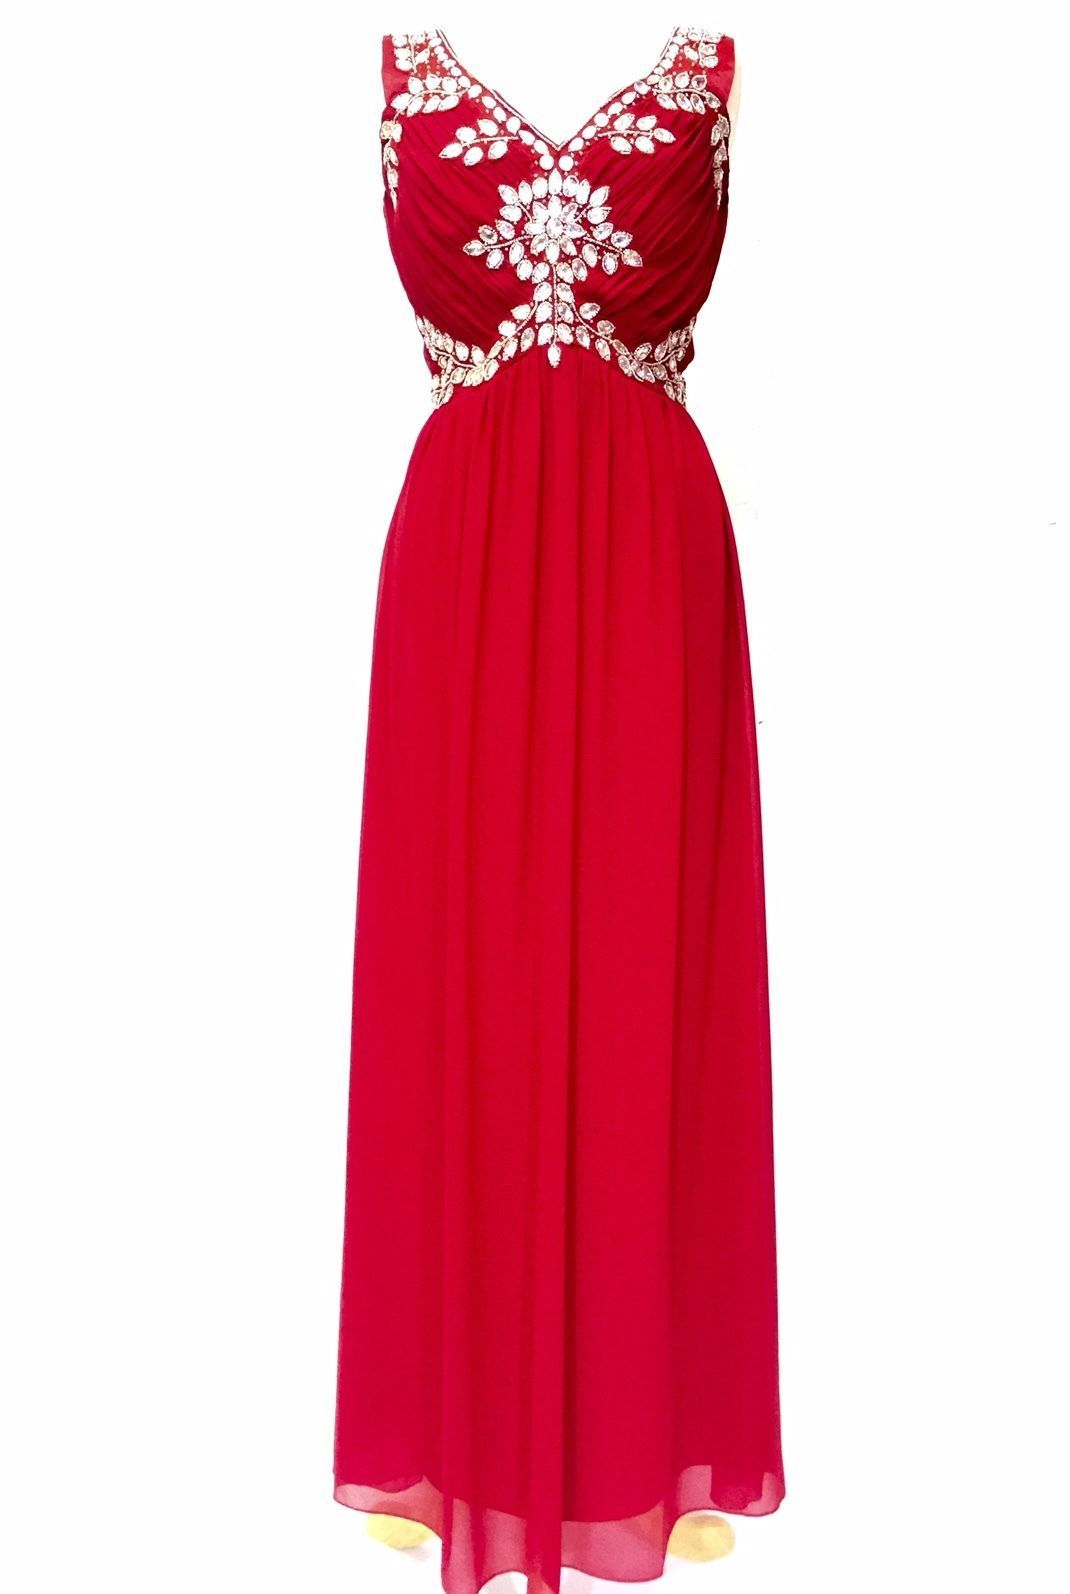 Red maxi dress gem sequin embellished bridesmaid party prom gown